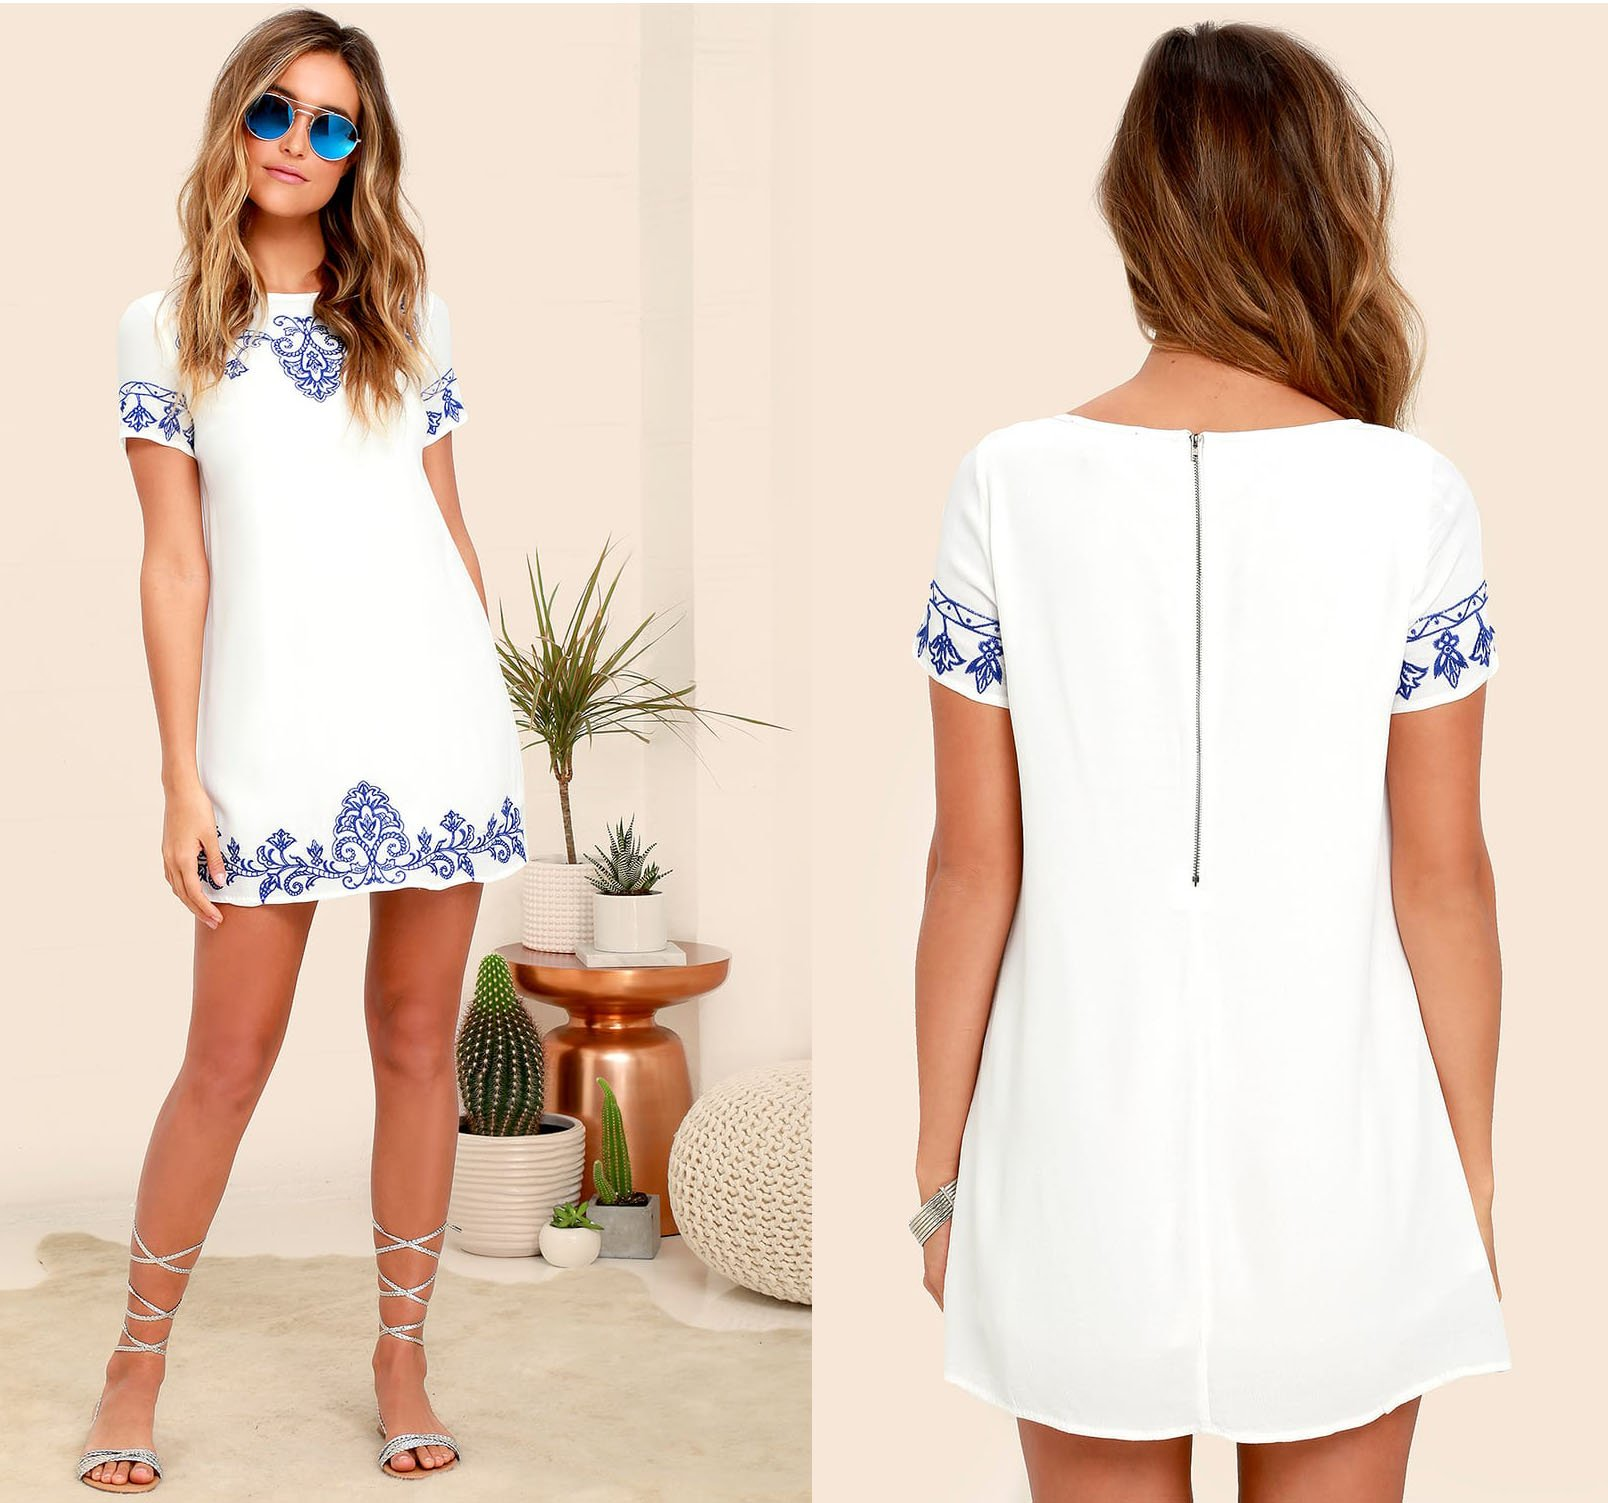 This cute blue-and-white Tale to Tell shift dress from Lulus can be dressed up or down for any occasion